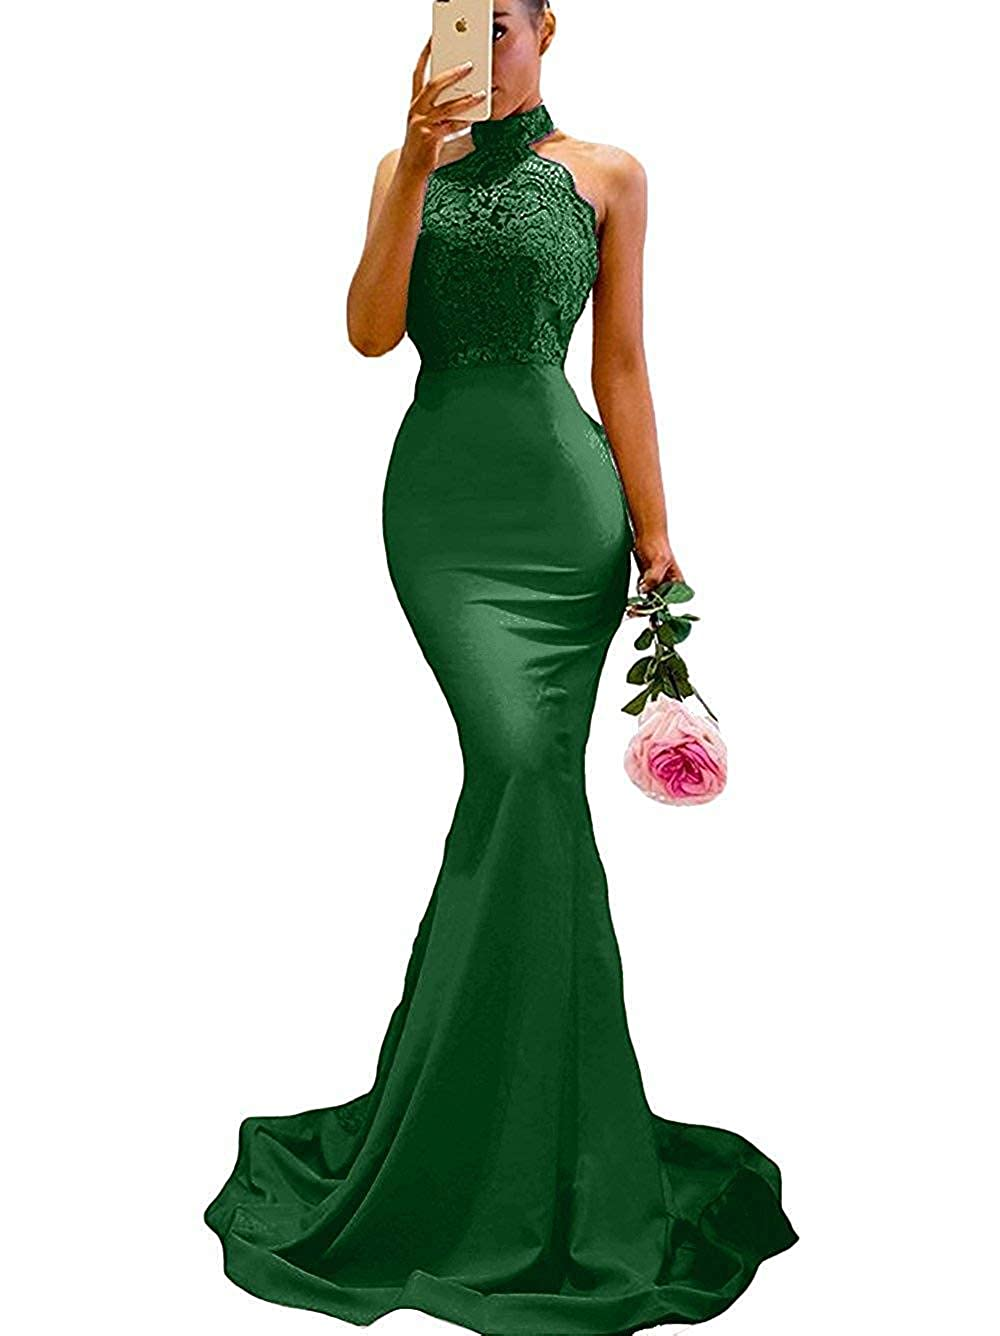 Dark Green Lnxianee Women's Halter Mermaid Prom Dresses 2019 Long Formal Evening Gowns